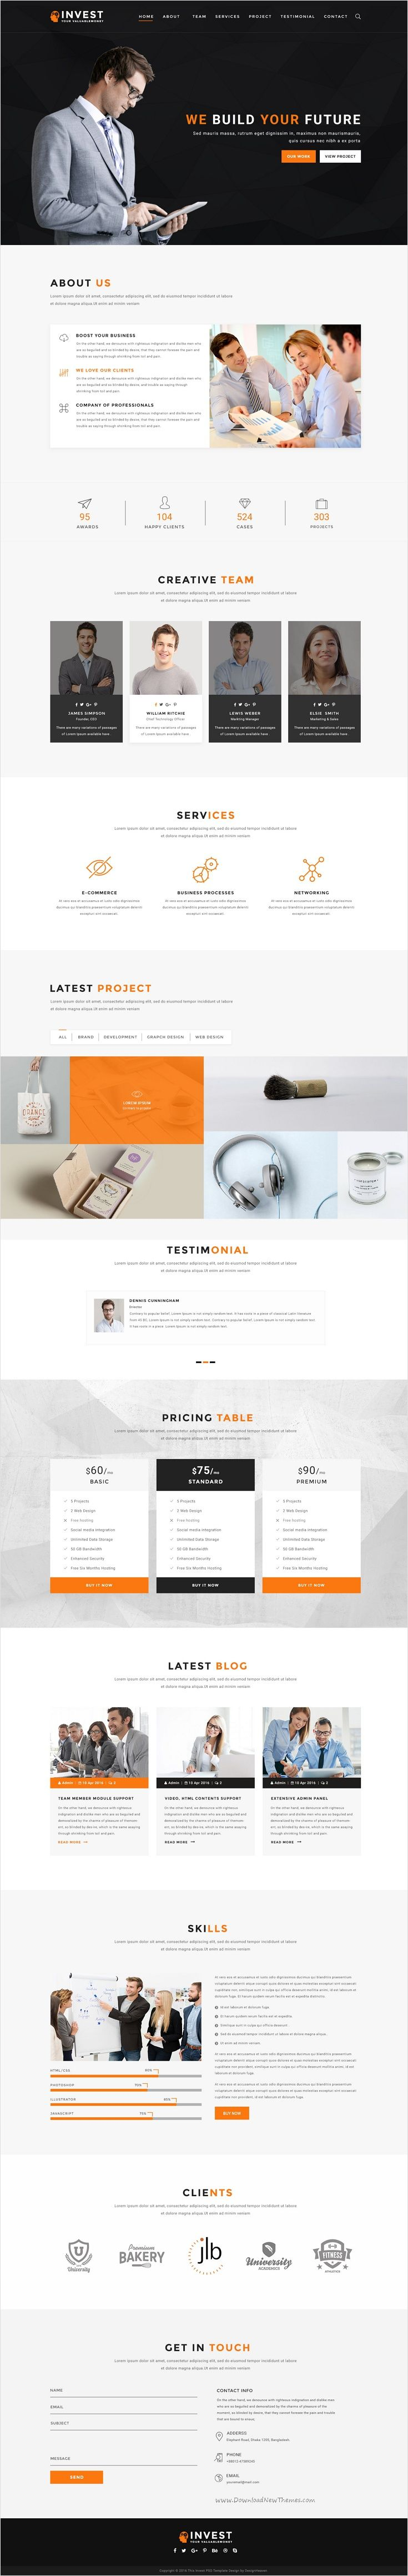 Invest is a unique, modern multipurpose 3 in 1 #PSD #template for any kind of business, #corporate website download now➩ https://themeforest.net/item/invest-multipurpose-business-psd-template/18484767?ref=Datasata